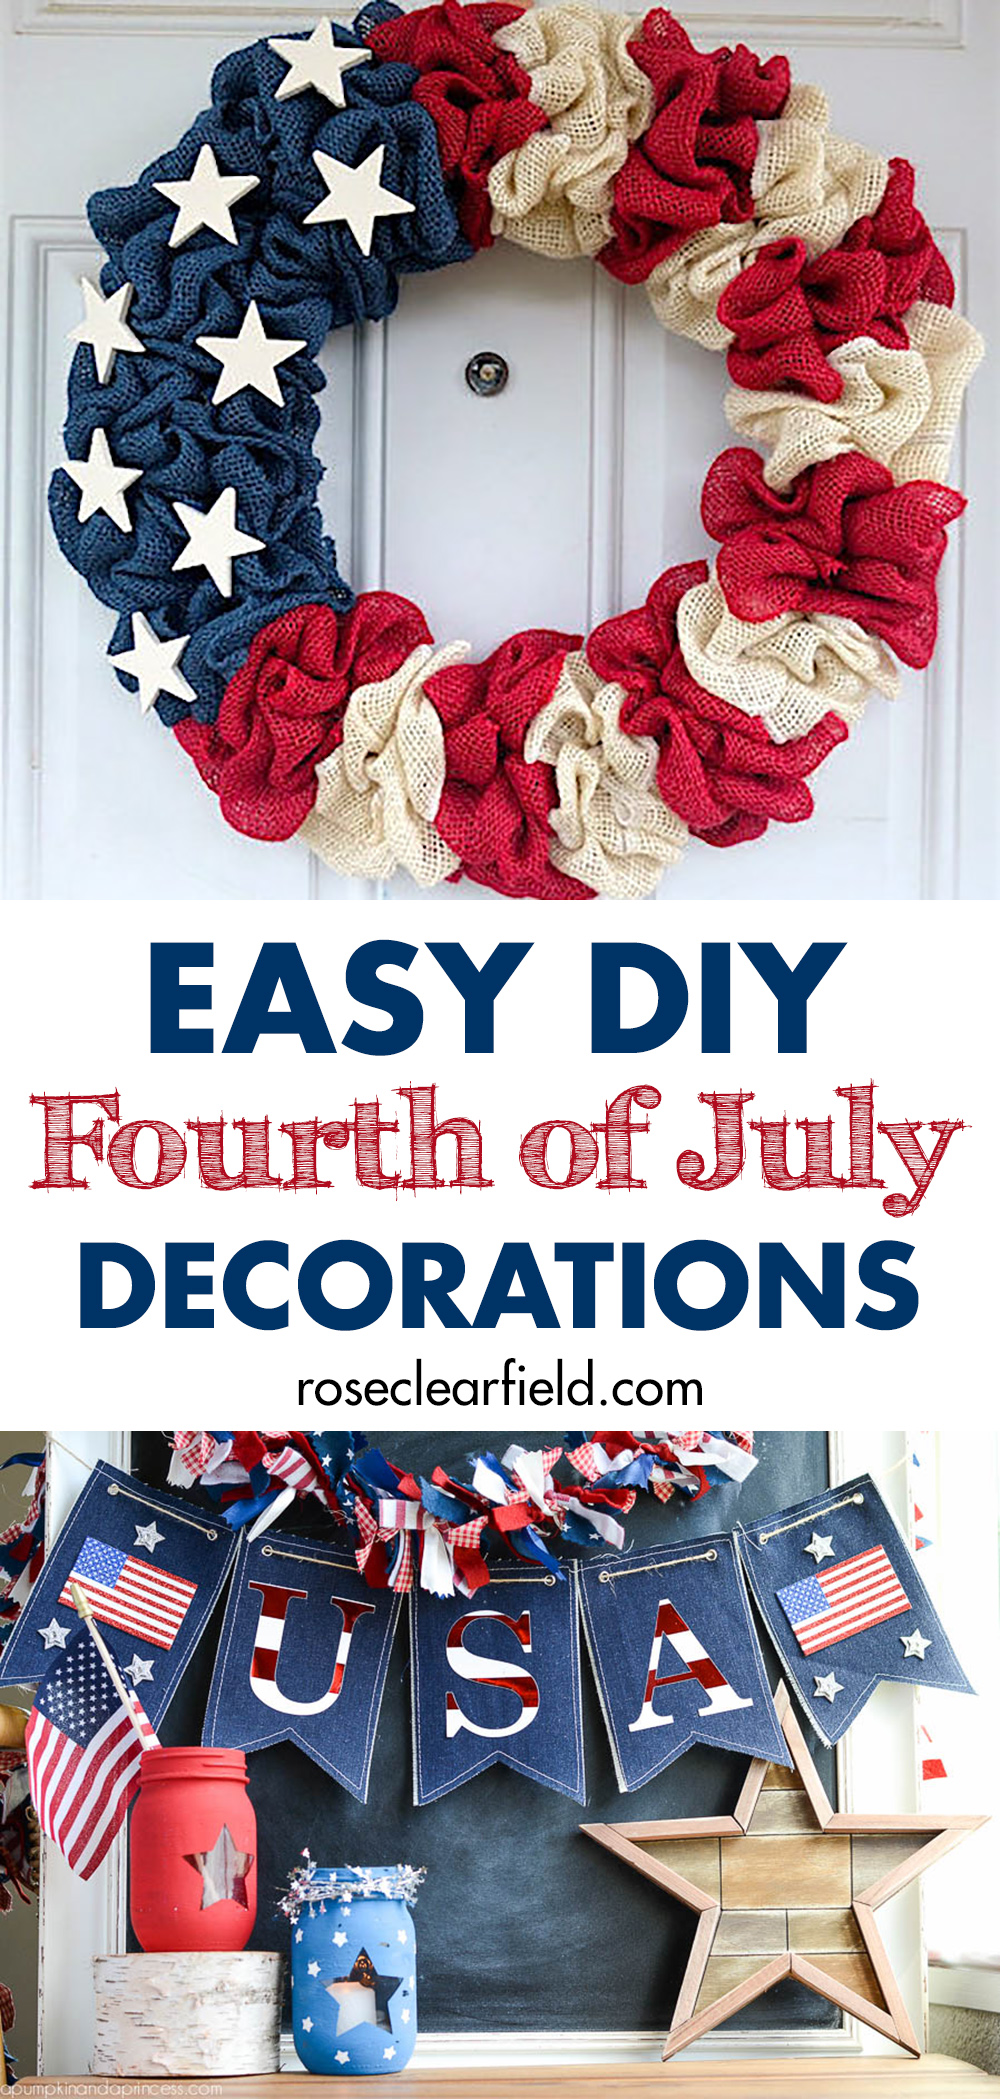 Easy Diy Fourth Of July Decorations 2 Rose Clearfield